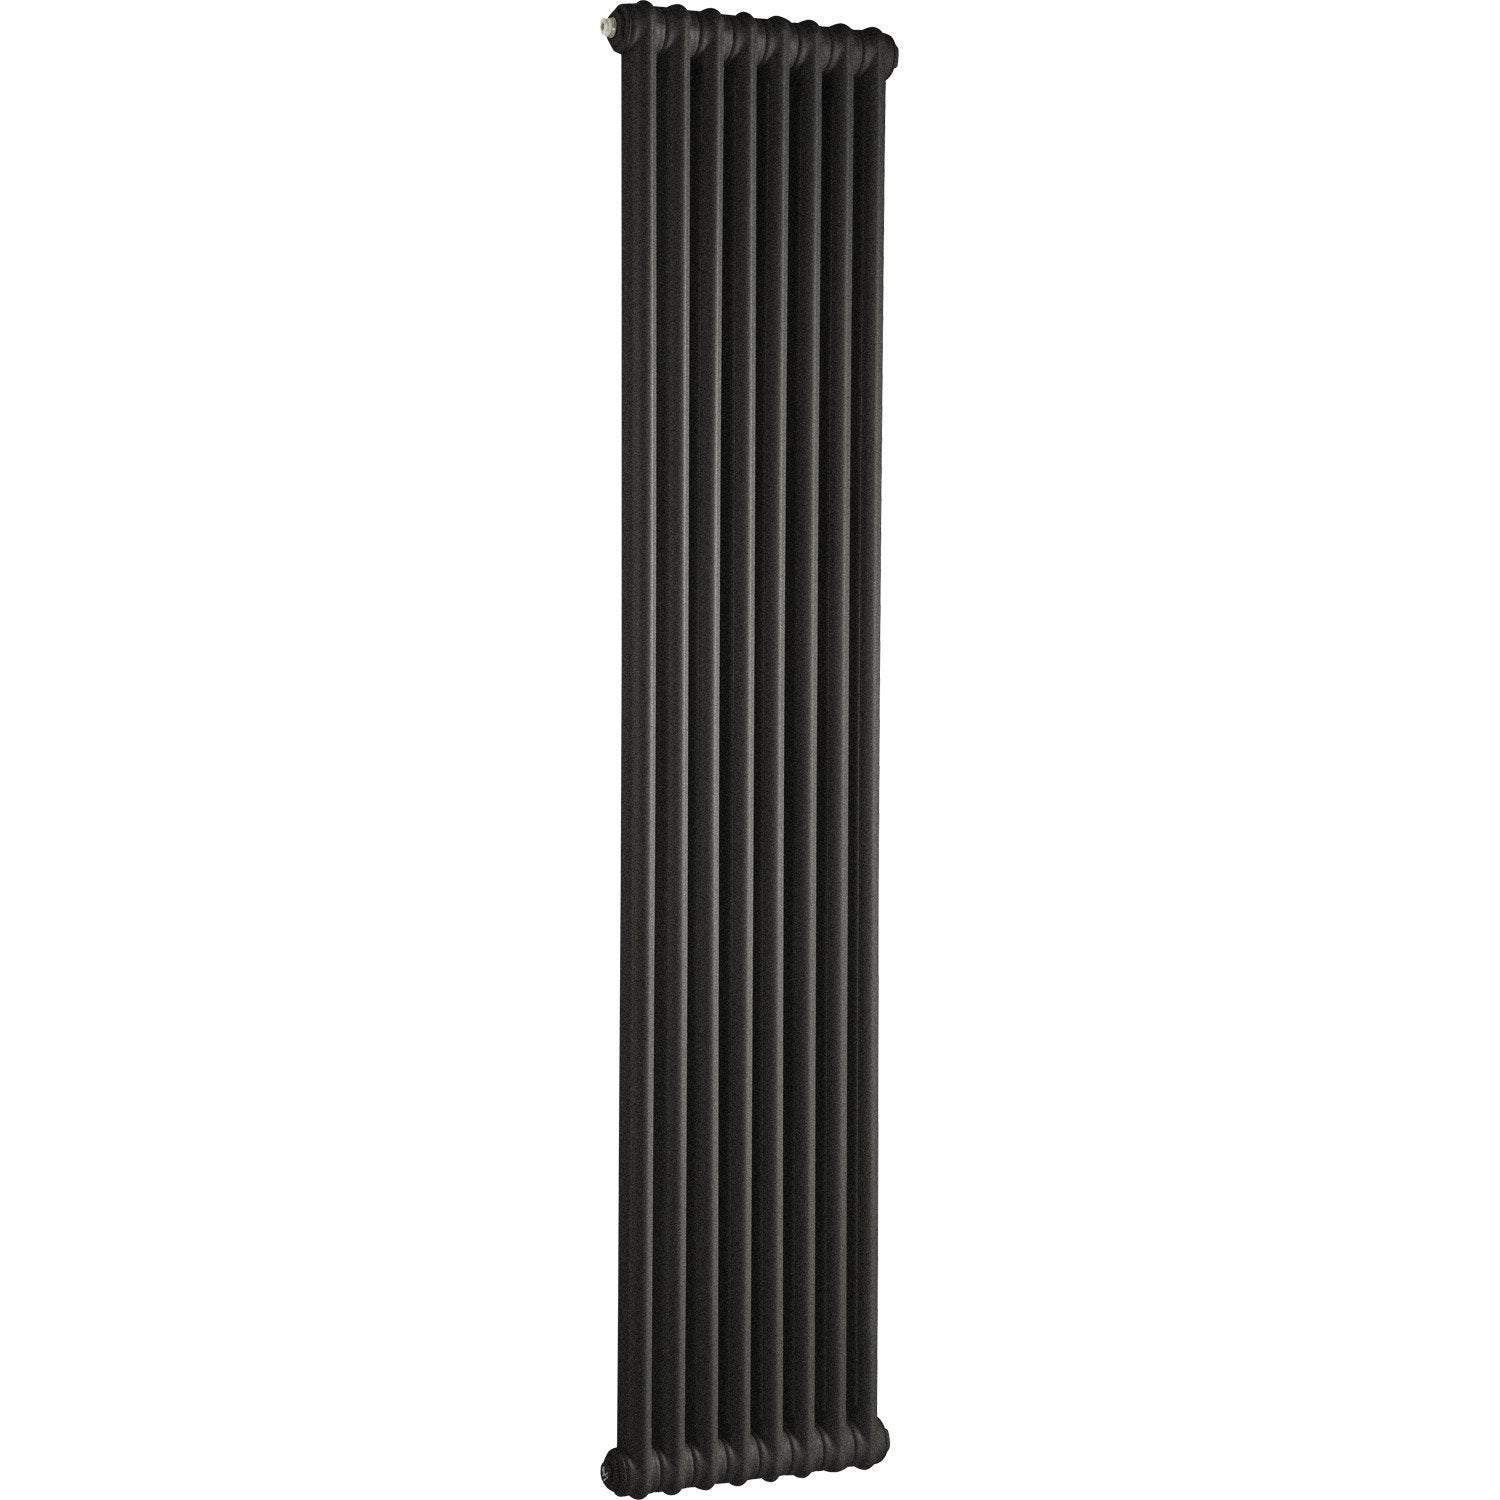 radiateur vertical leroy merlin radiateurs chauffage central leroy merlin radiateur radiateur. Black Bedroom Furniture Sets. Home Design Ideas